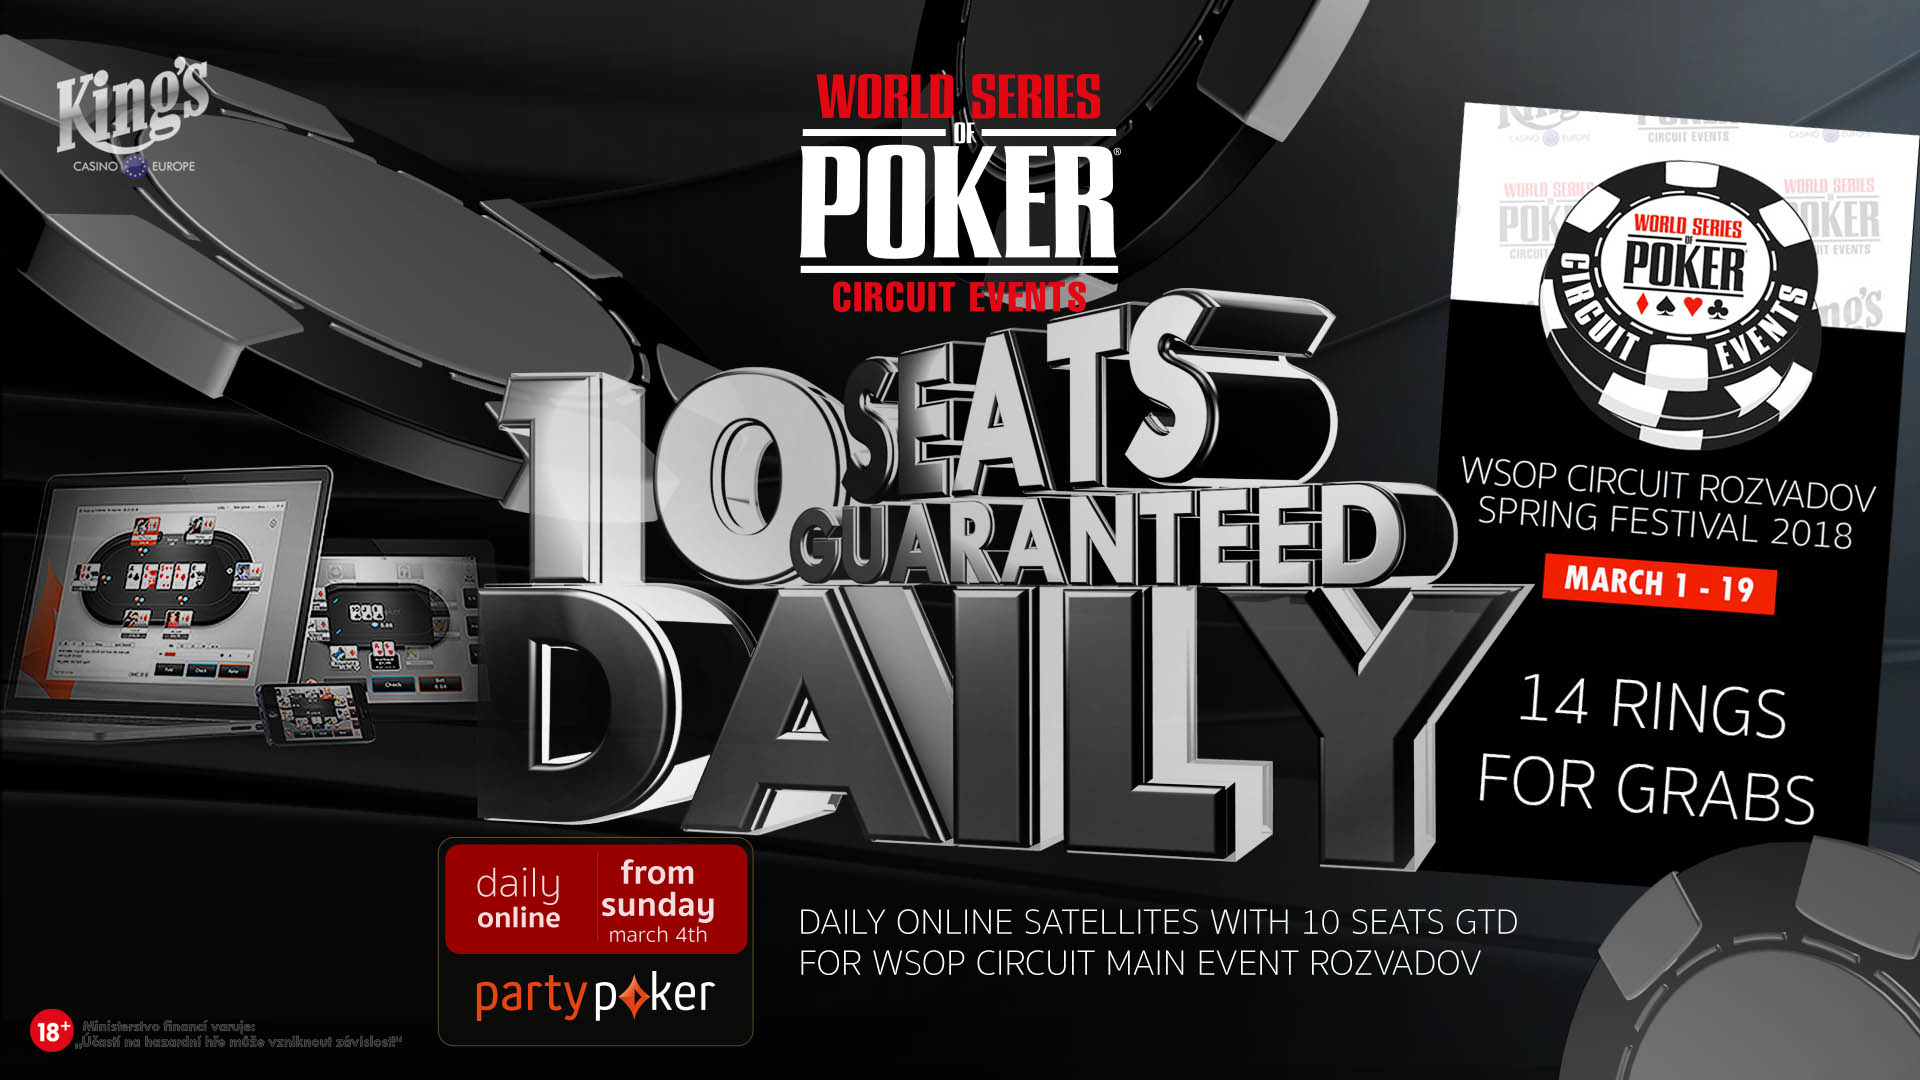 teaser-online-daily-10seats-gtd